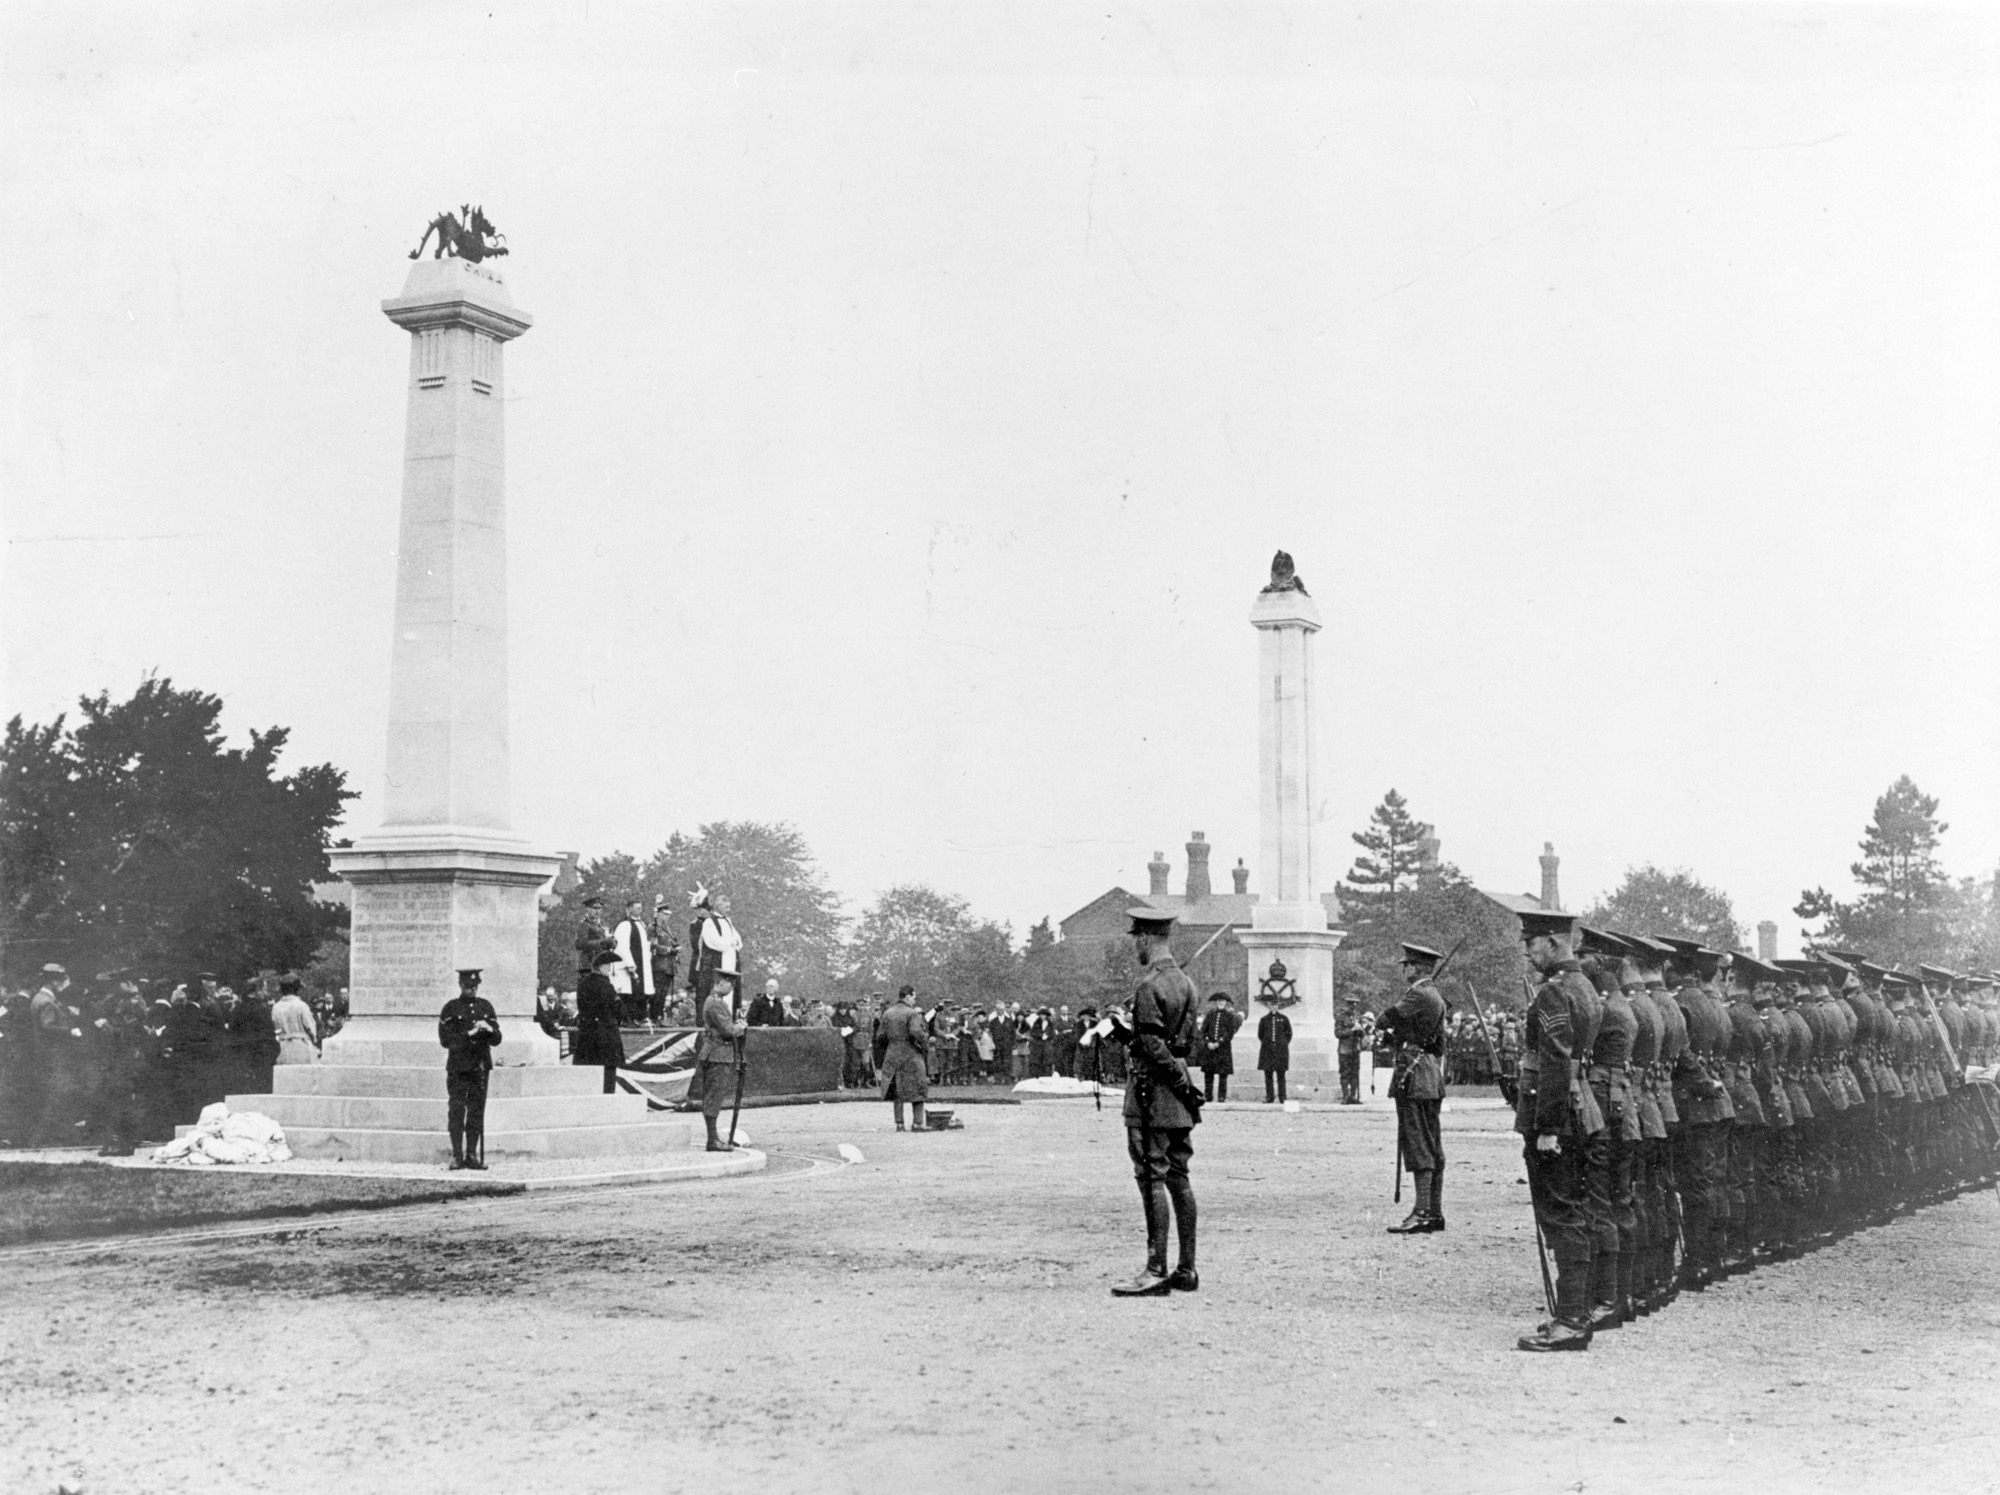 Photograph of the unveiling and dedication of the war memorials on 30 September 1922. On the left is the memorial to the North Staffordshire Regiment (surmounted by a Chinese Dragon); on the right is the memorial to the South Staffordshire Regiment (surmounted by a Sphinx).